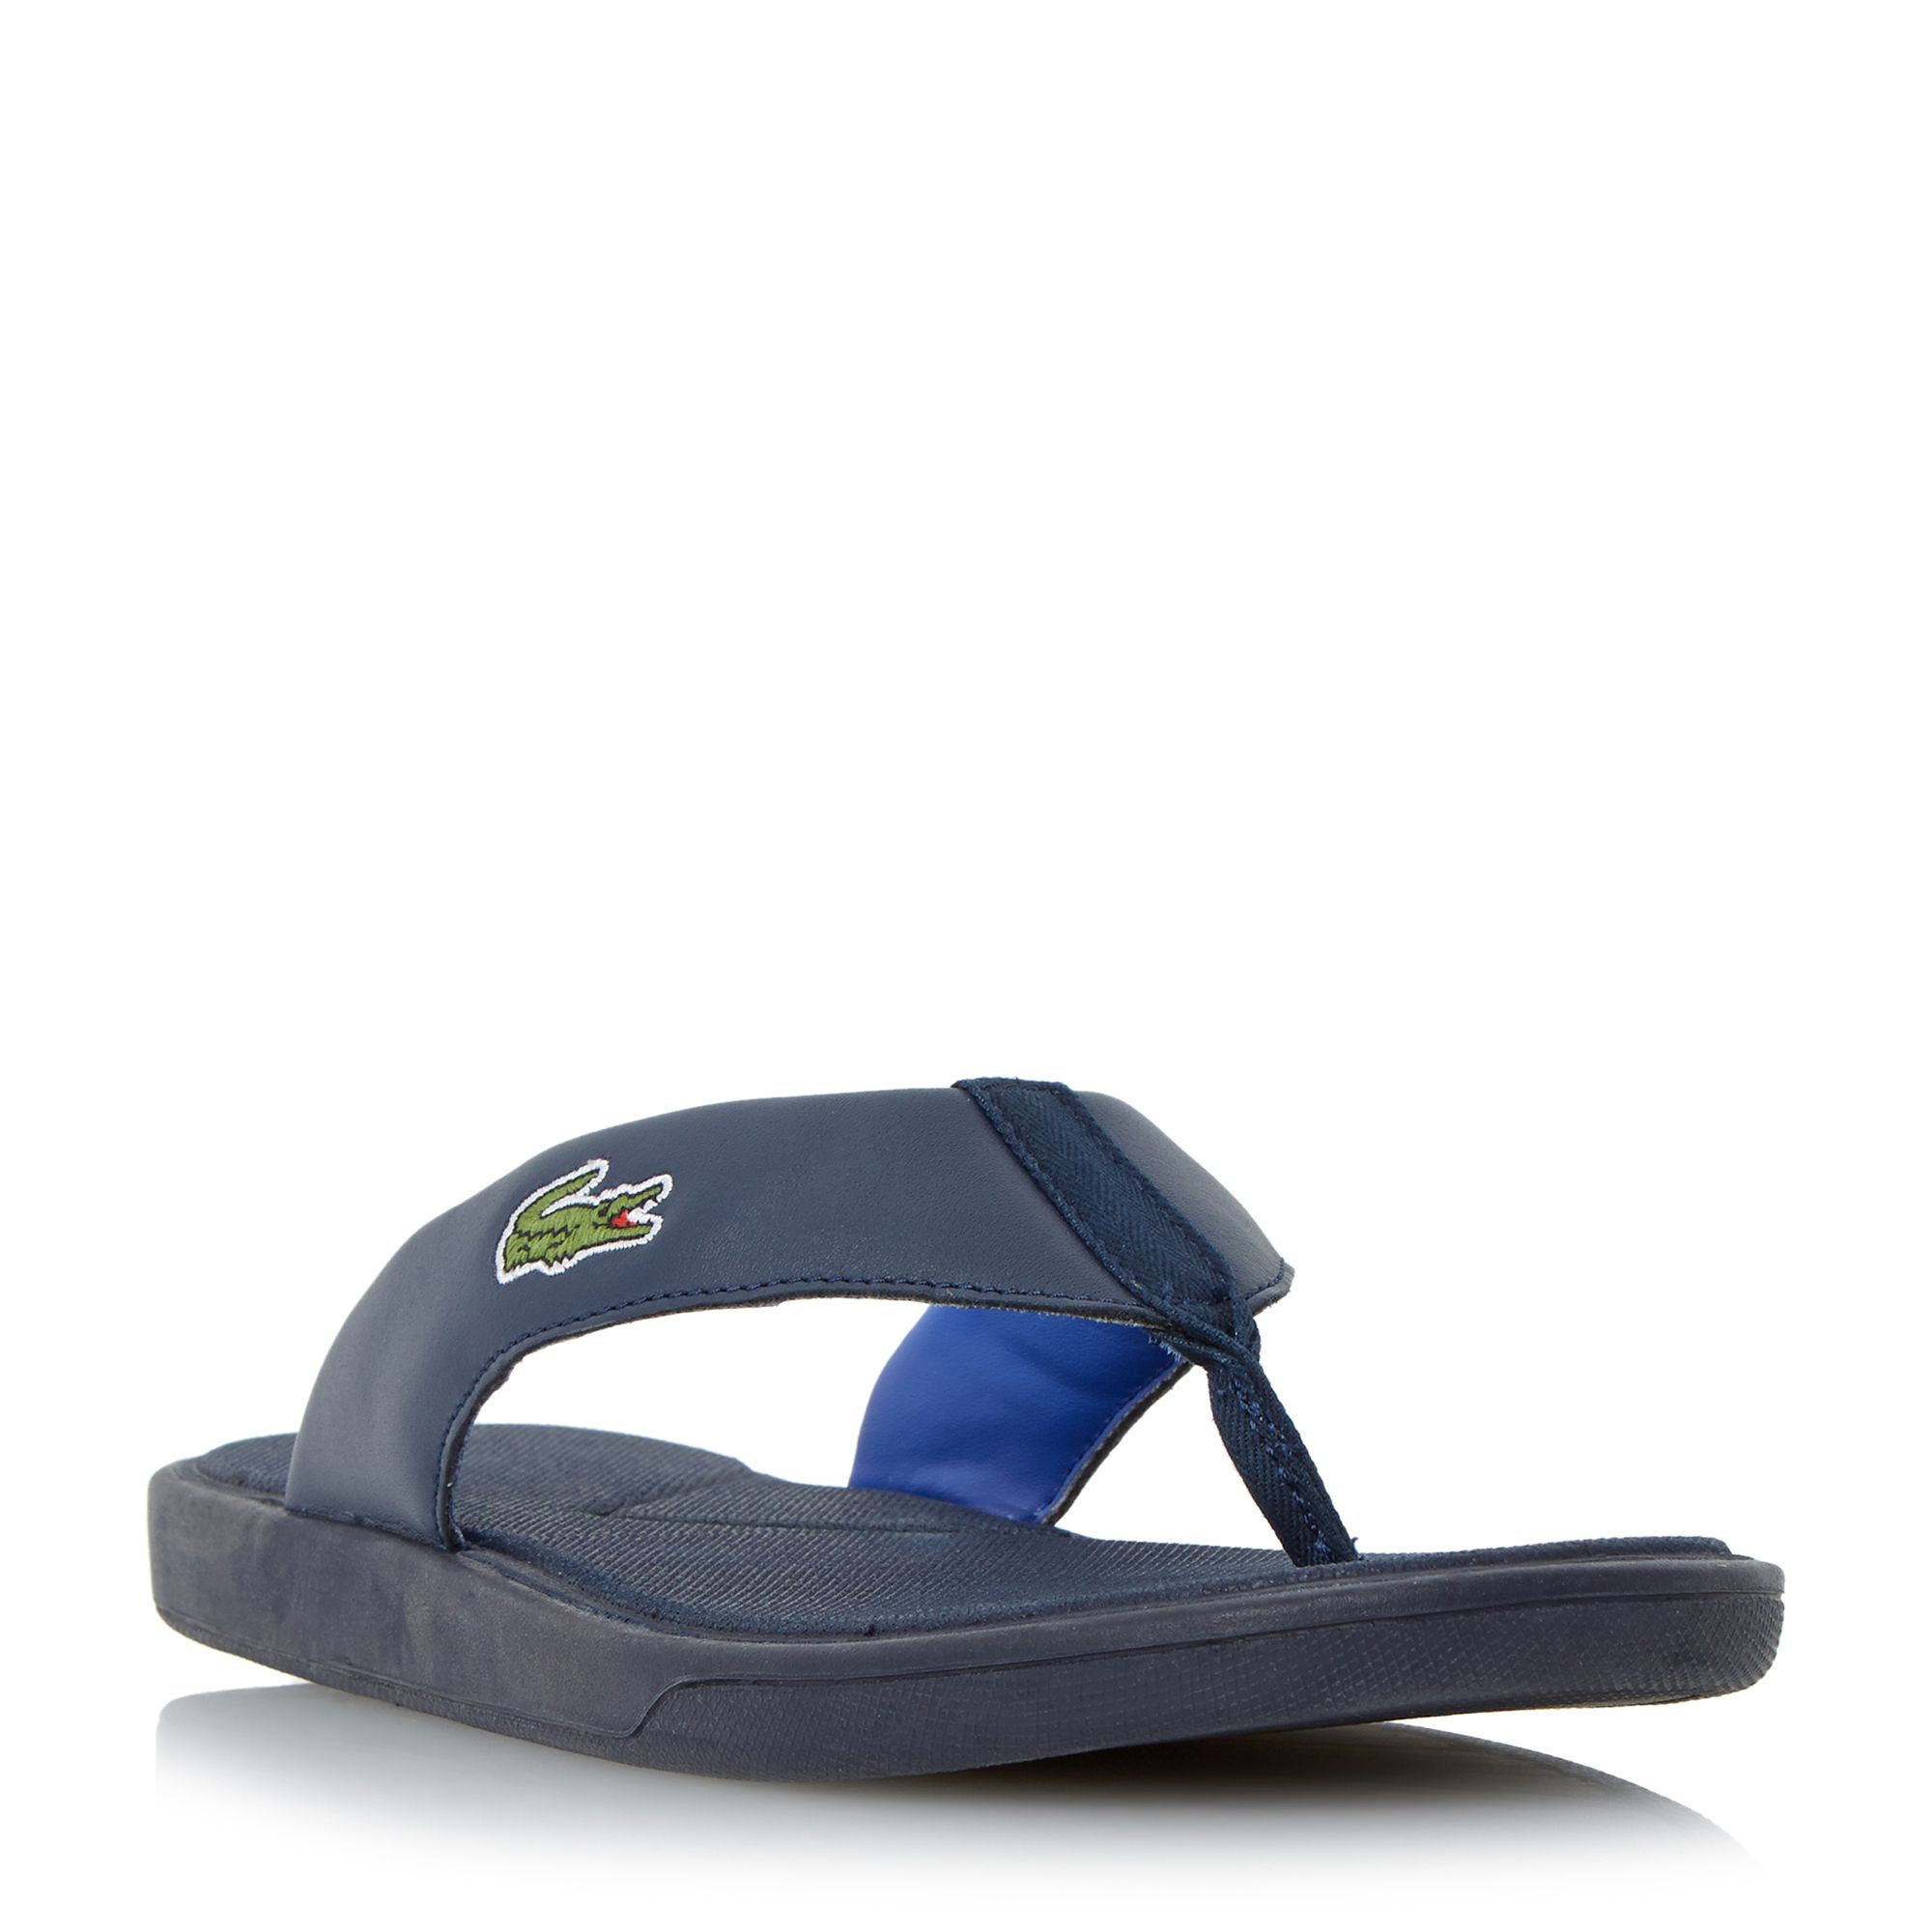 417fd2562 Mens Lacoste L.30 Leather Toe Post Flip Flops Navy